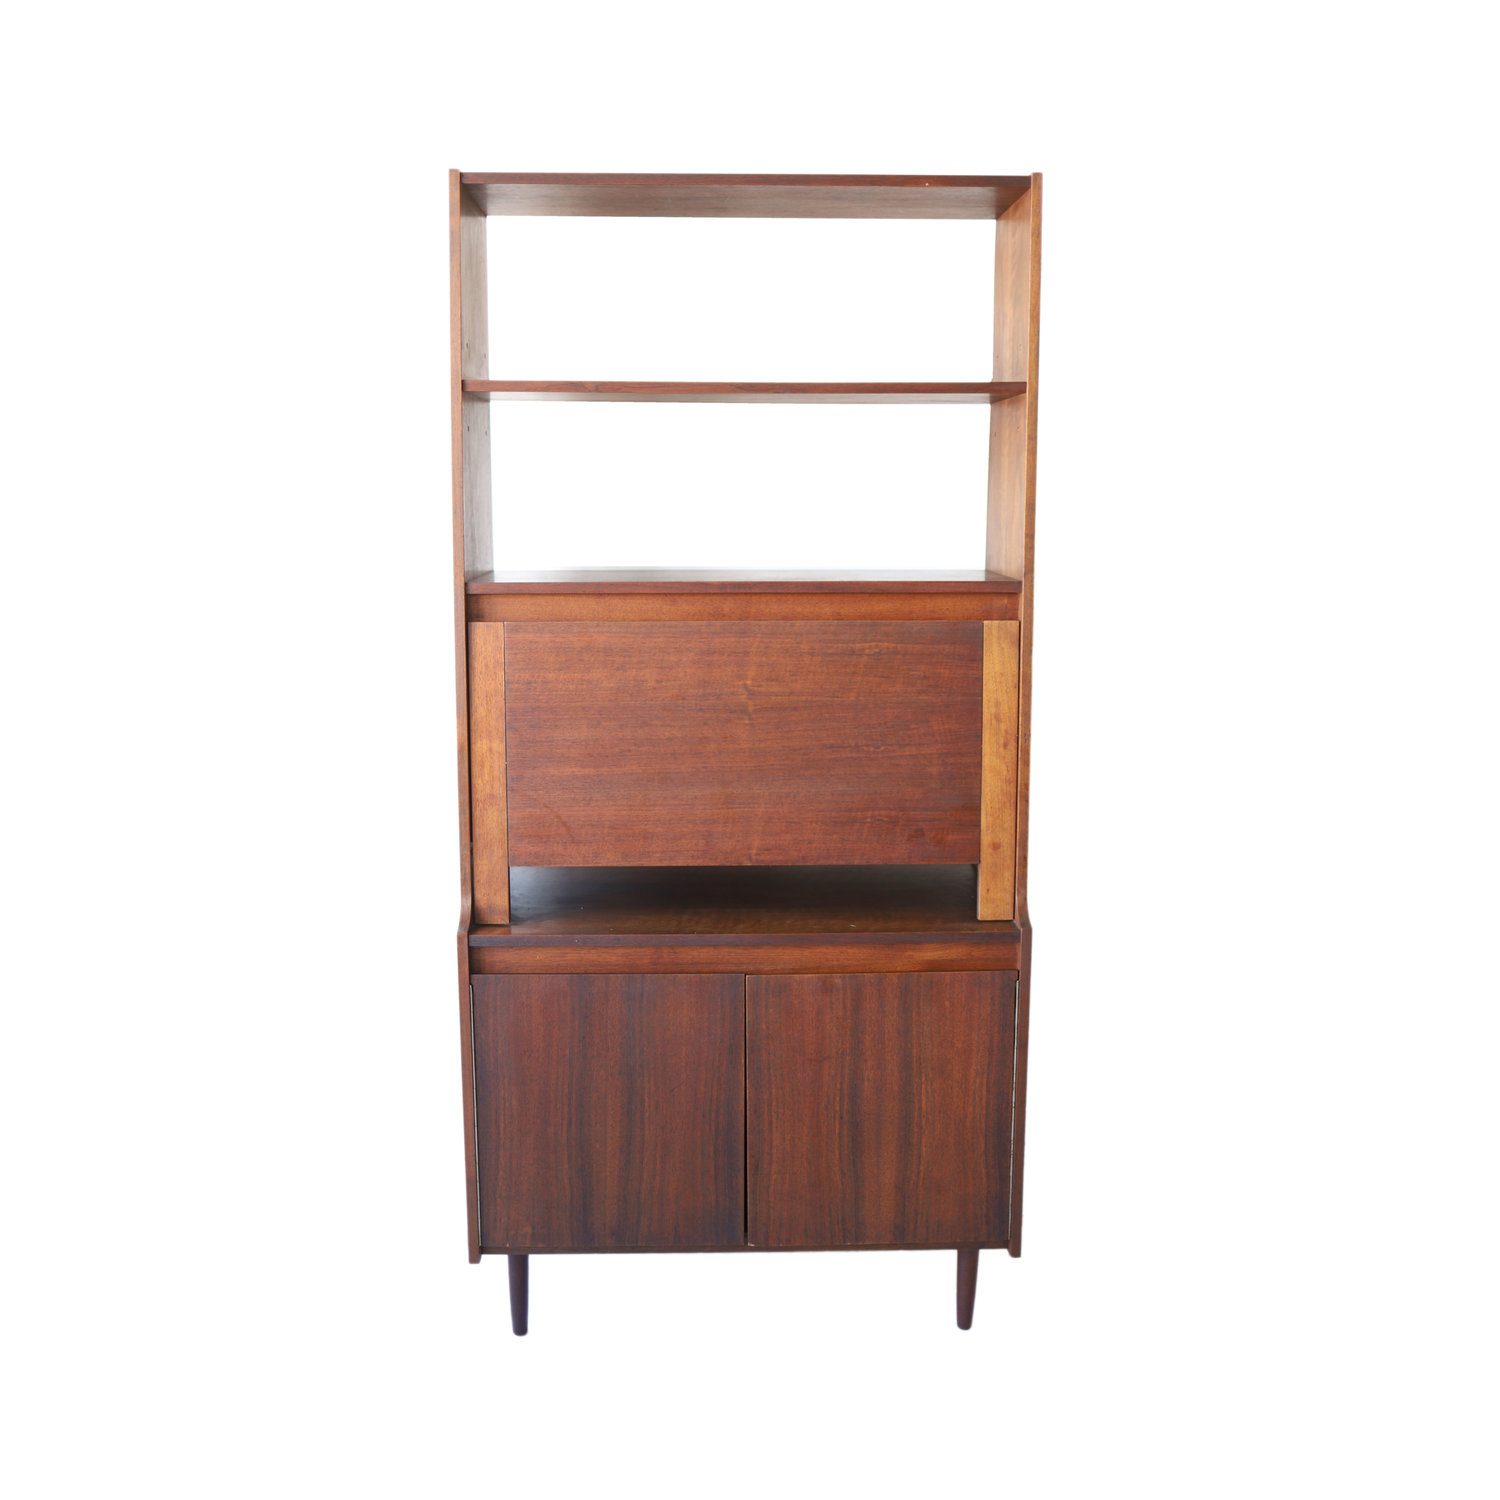 At 1st sight new products vintage mid century modern hutch room divider